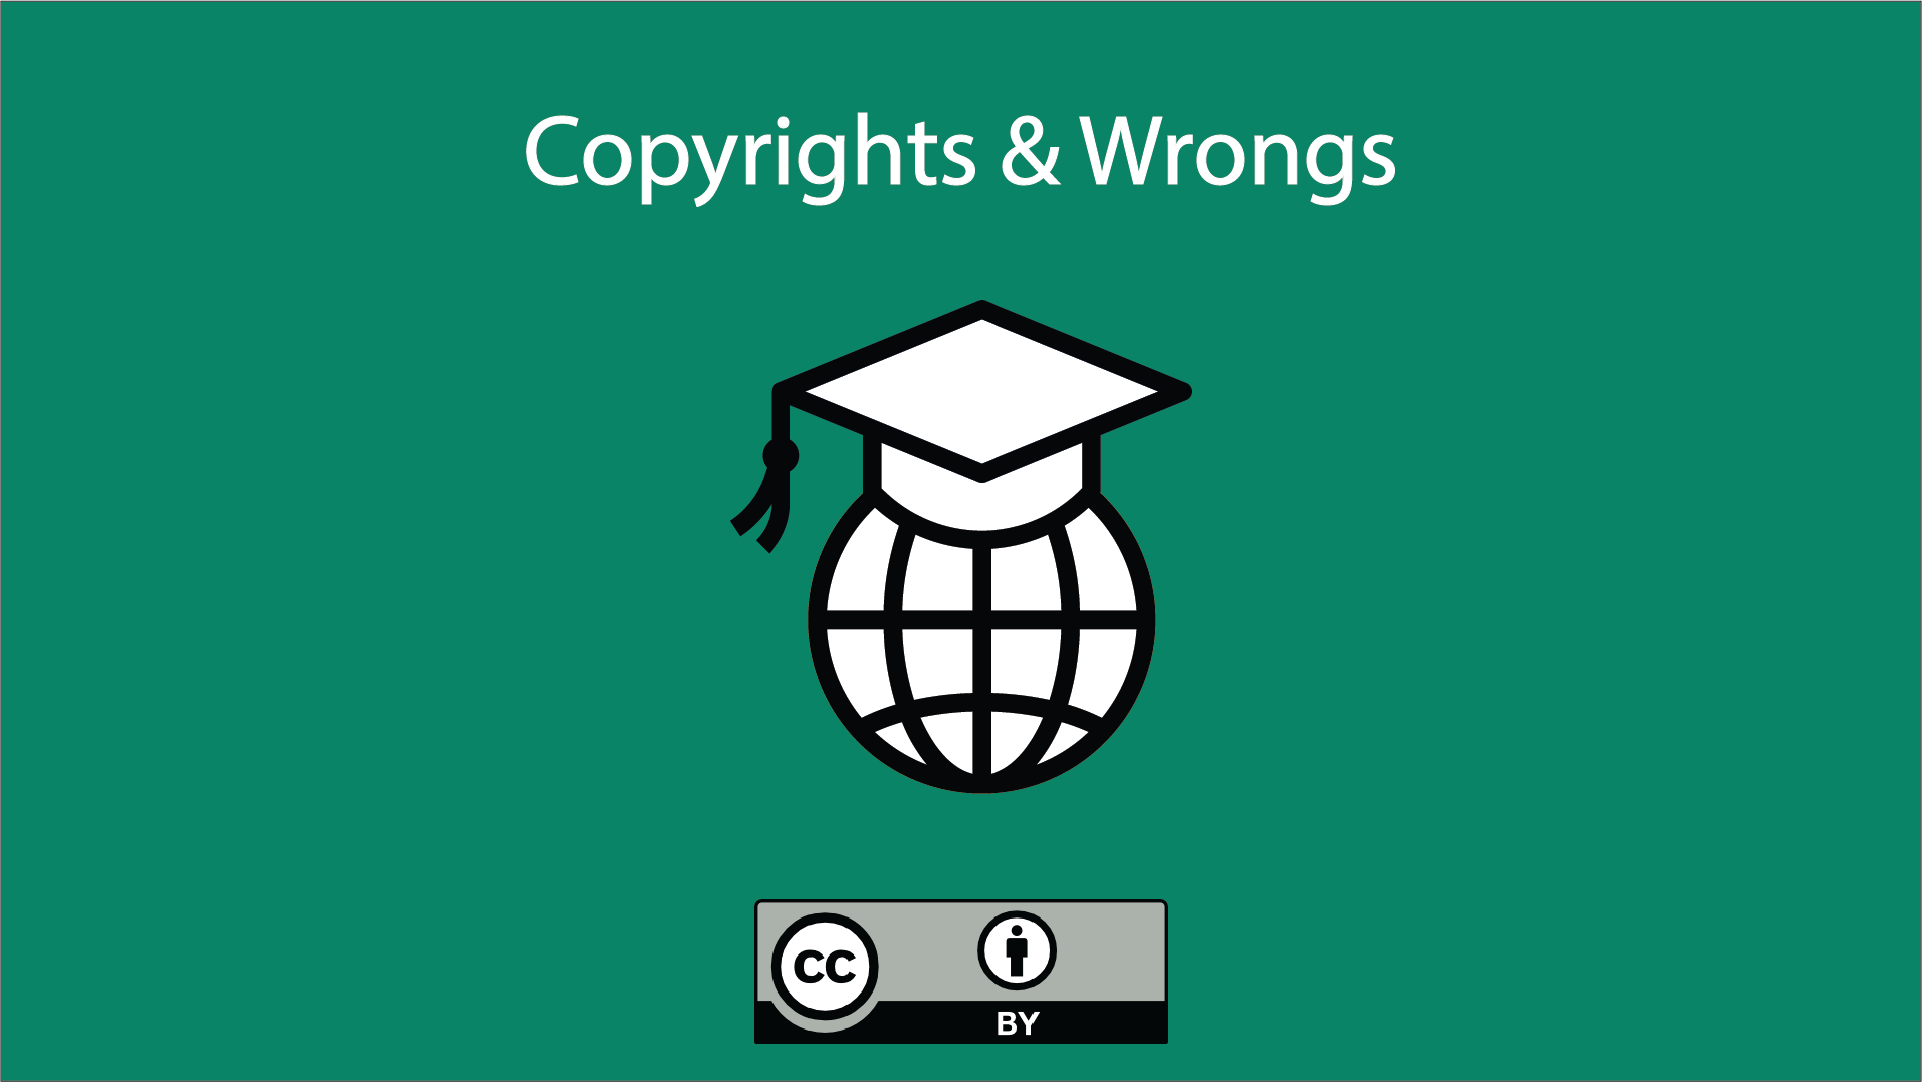 Copyrights & Wrongs